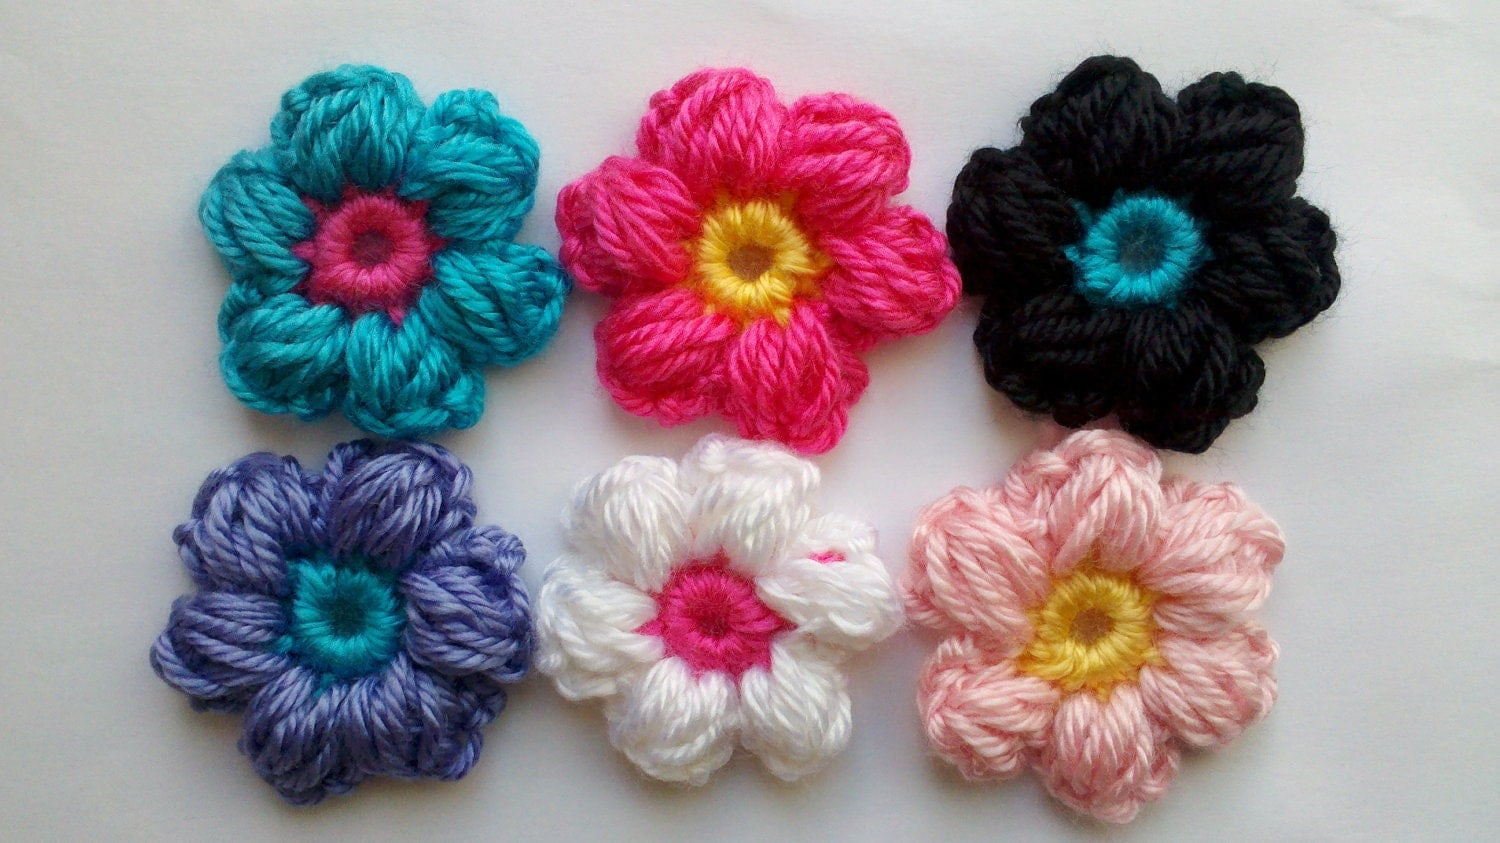 Diy crochet 6 petal puff stitch flower blanket -  Zoom